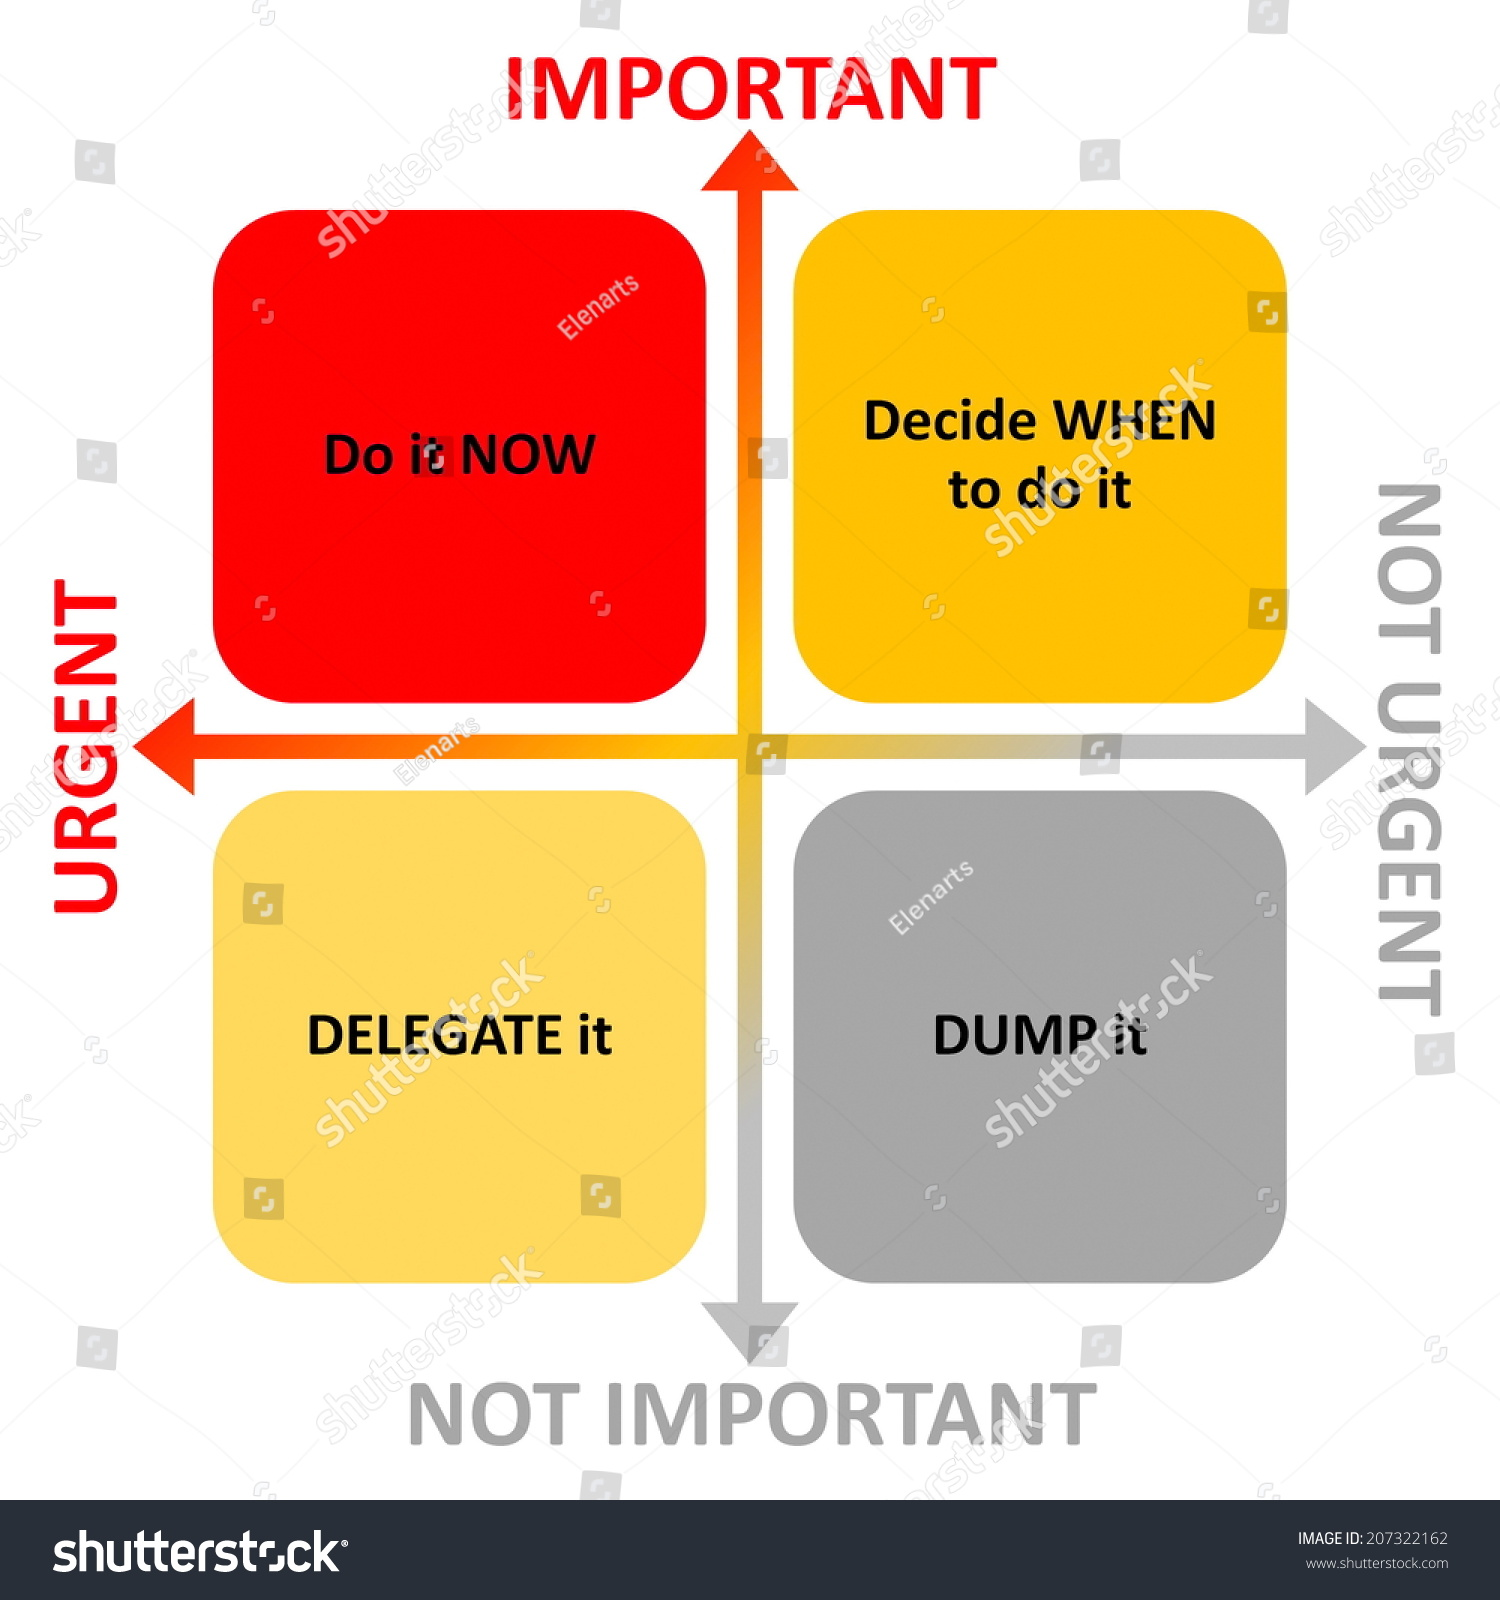 stock photo time management diagram with arrows for importance and urgence things to do 207322162 light wiring diagrams 19 on light wiring diagrams